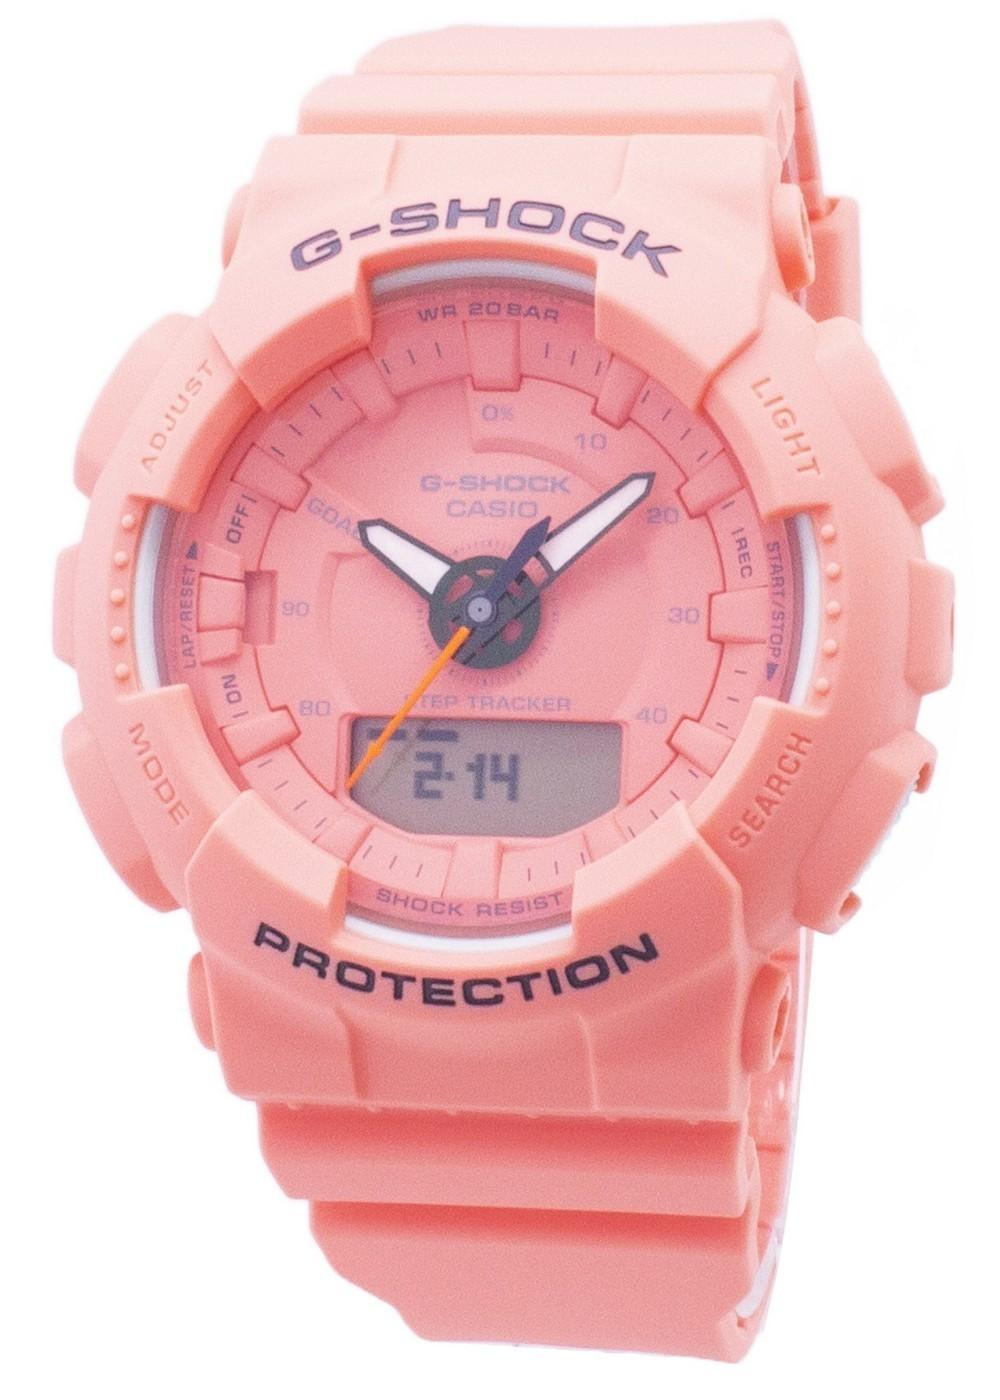 Casio G-Shock S Series GMA-S130VC-4A GMAS130VC-4A Step Tracker Analog Digital 200M Women's Watch